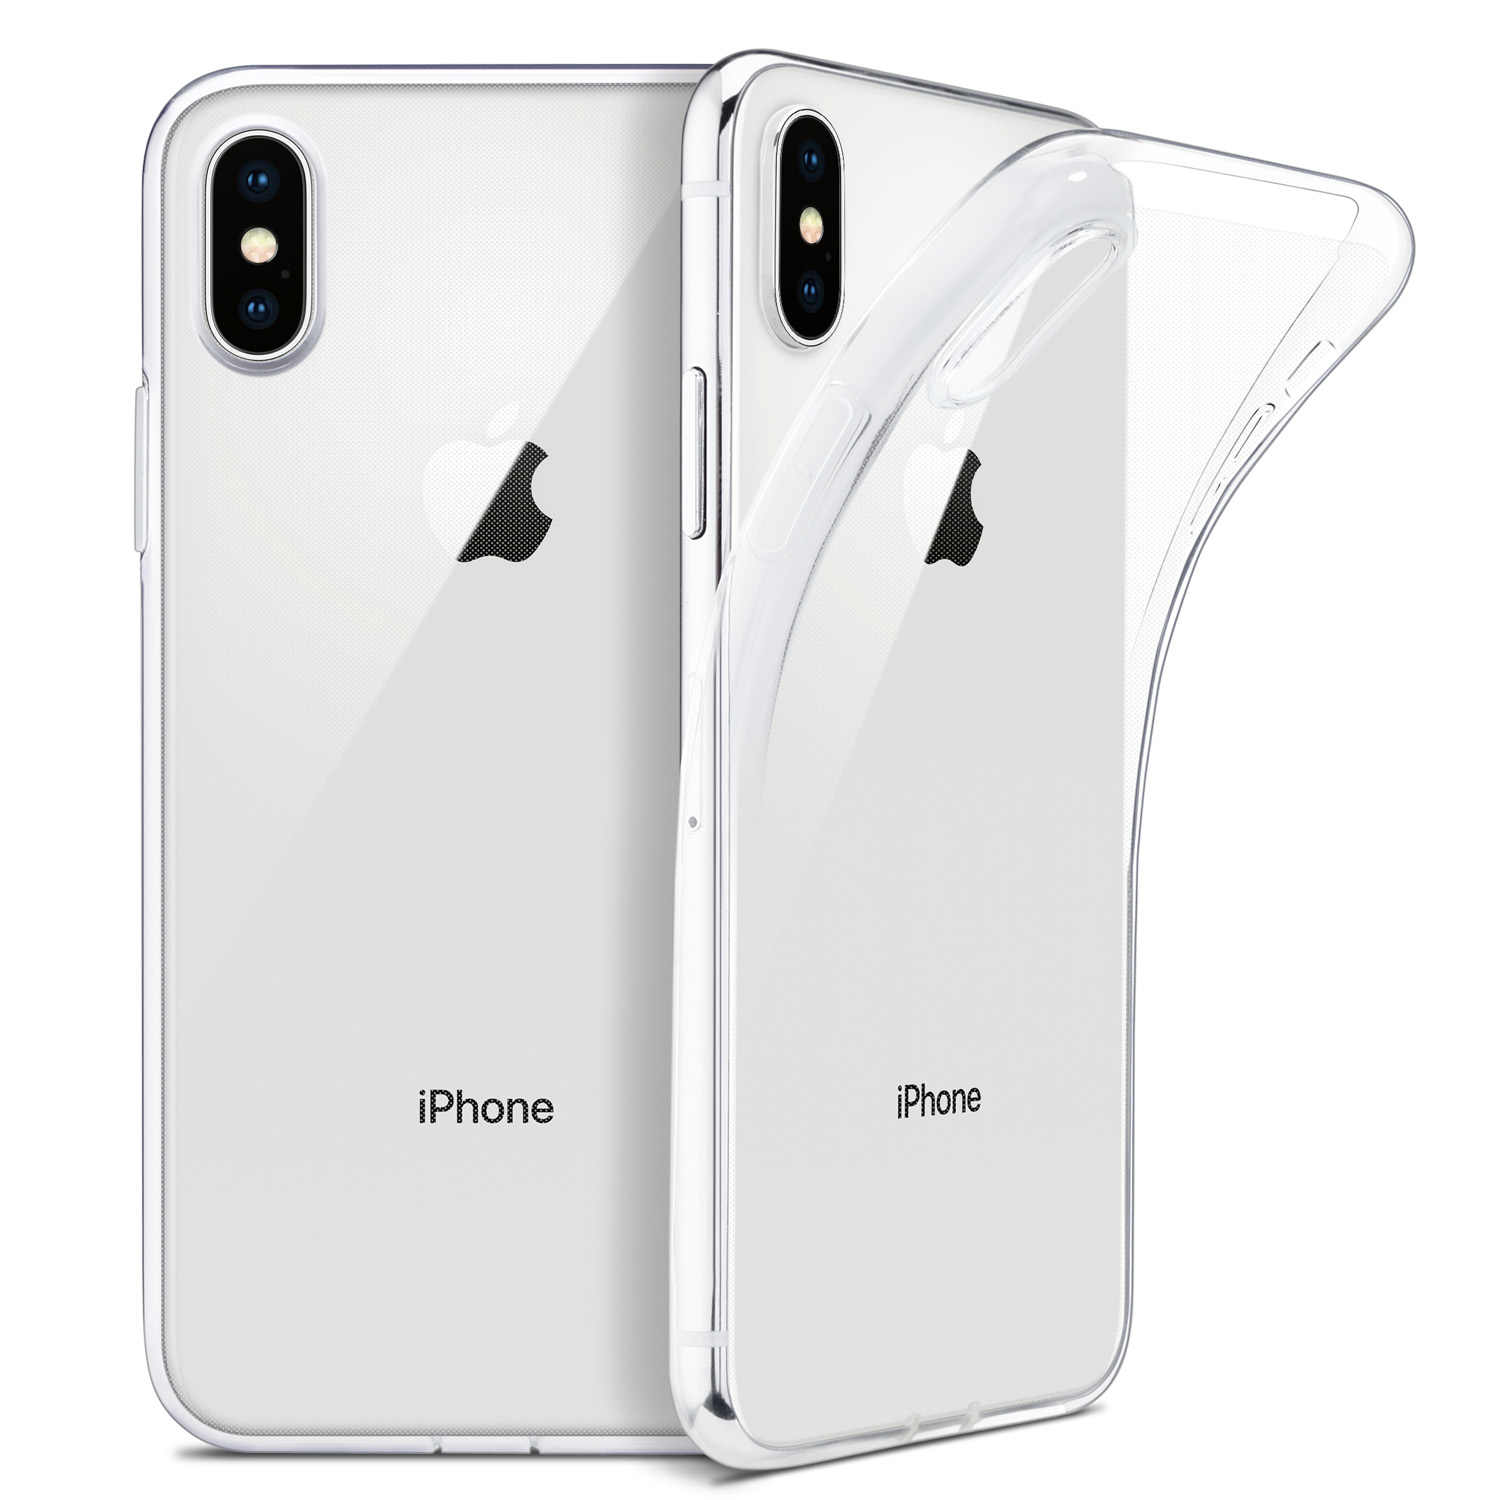 "Per la custodia iPhone X, WEFOR Slim Cover in TPU trasparente morbida supporto ricarica Wireless per Apple 5.8 ""iPhone X /iPhone 10 (versione 2017)"